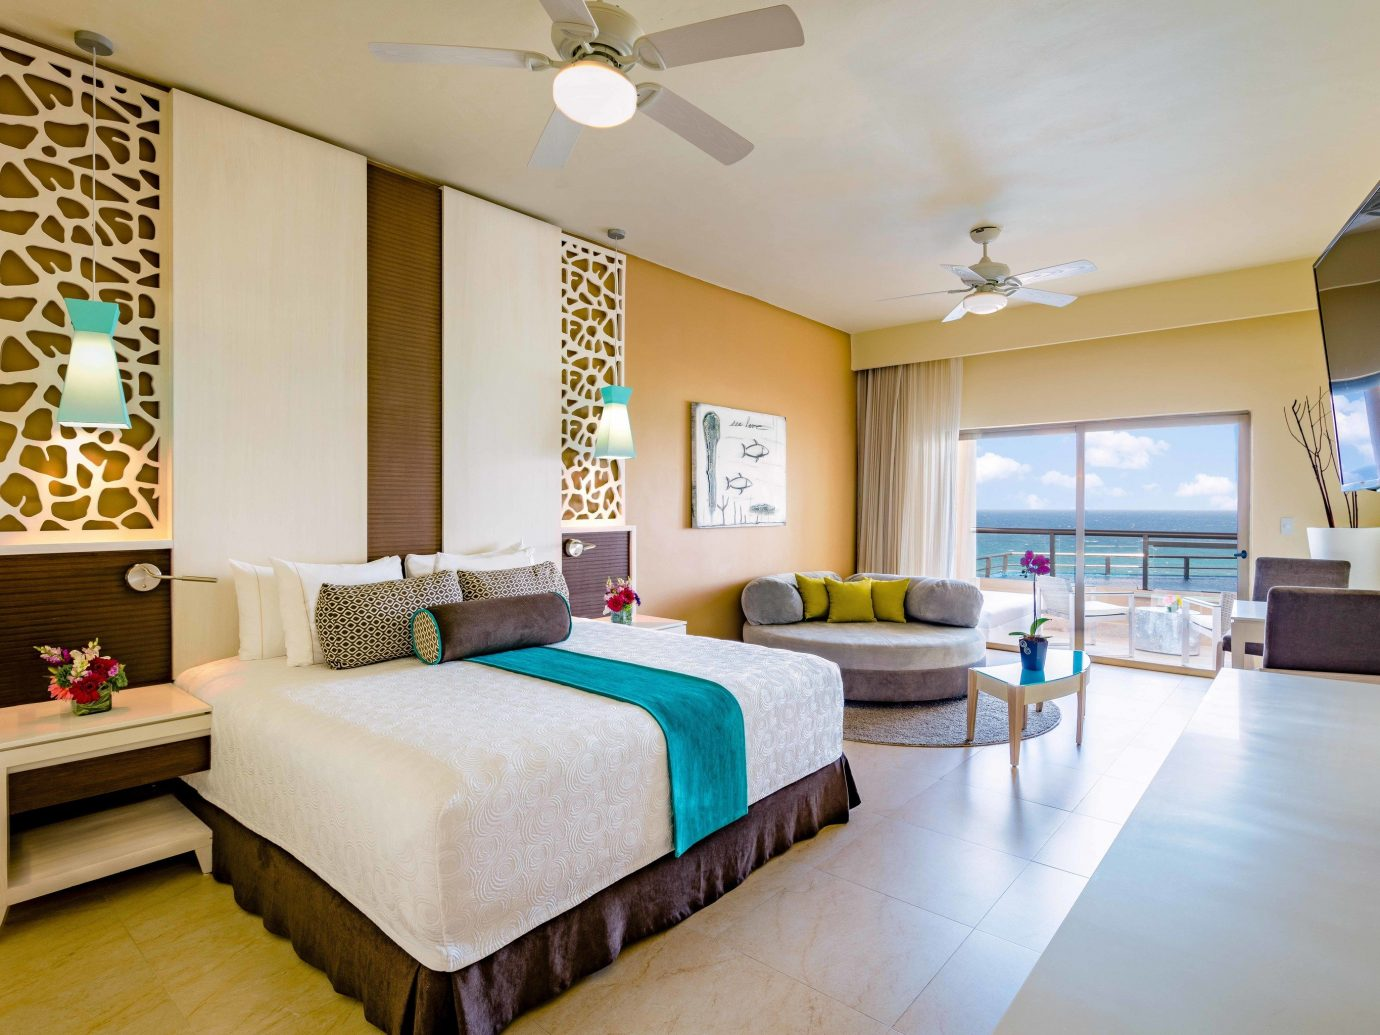 All-inclusive All-Inclusive Resorts Mexico Riviera Maya, Mexico indoor floor ceiling wall room Living interior design Bedroom Suite furniture living room real estate estate hotel interior designer condominium penthouse apartment area Modern wood